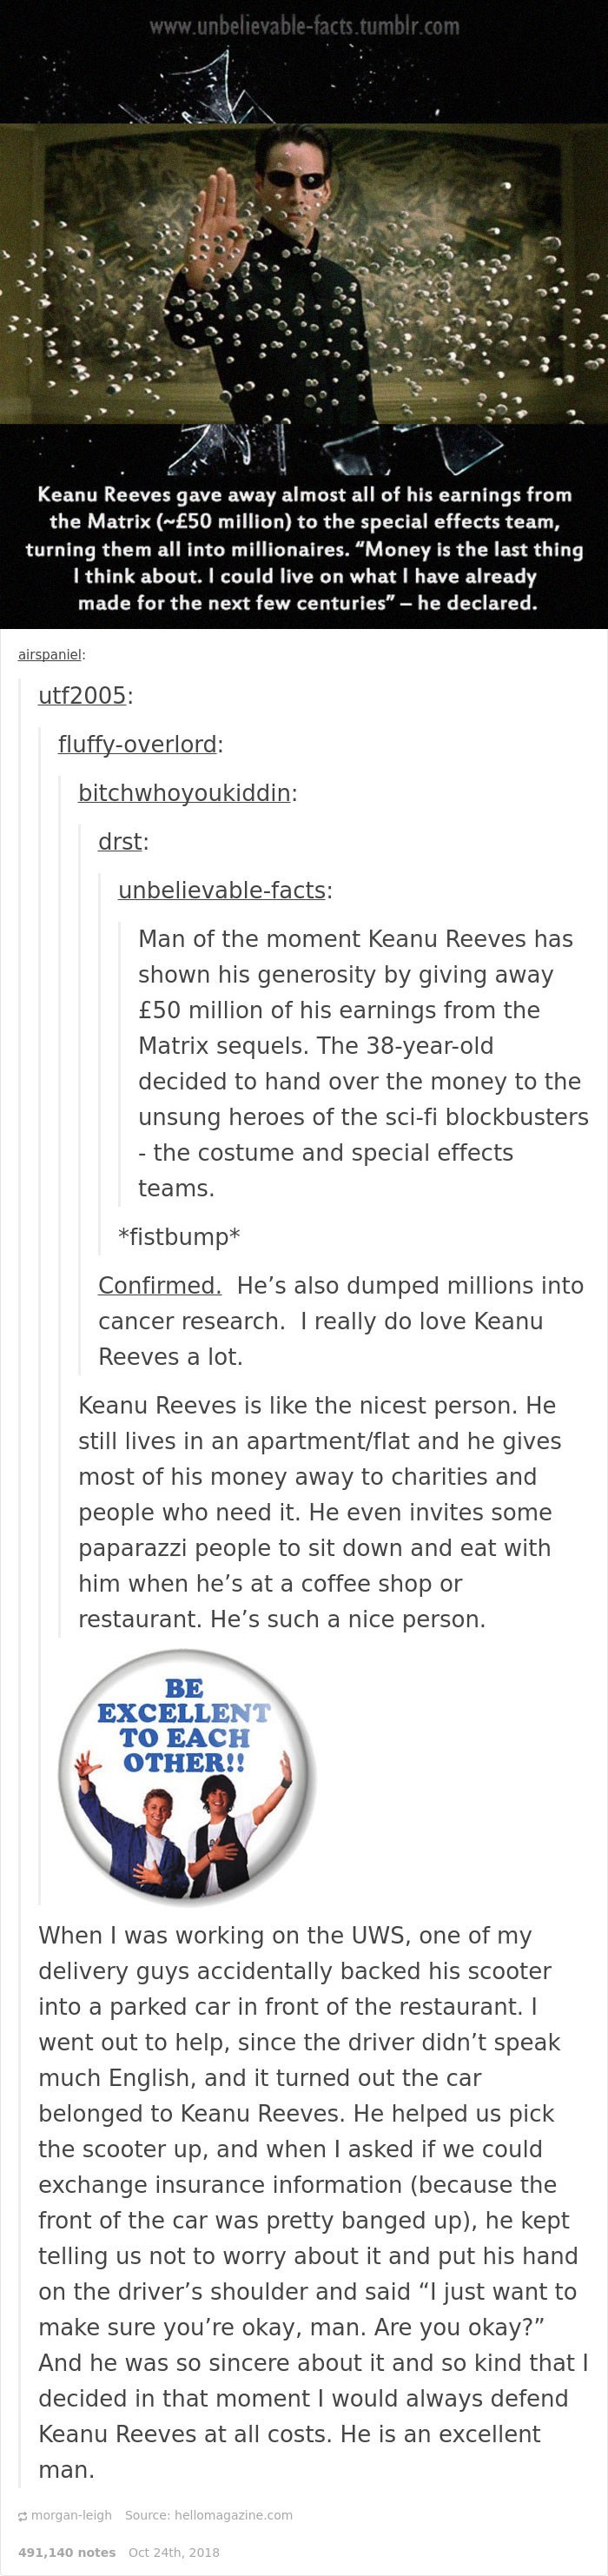 """Keanu Reeves - Text - www.unbelievable-facts.tumblr.com Keanu Reeves gave away almost all of his earnings from the Matrix (~E50 million) to the special effects team, turning them all into millionaires. """"Money is the last thing I think about. I could live on what I have already made for the next few centuries"""" he declared. airspaniel: utf2005 fluffy-overlord: bitchwhoyoukiddin: drst: unbelievable-facts: Man of the moment Keanu Reeves has shown his generosity by giving away £50 million of his earn"""